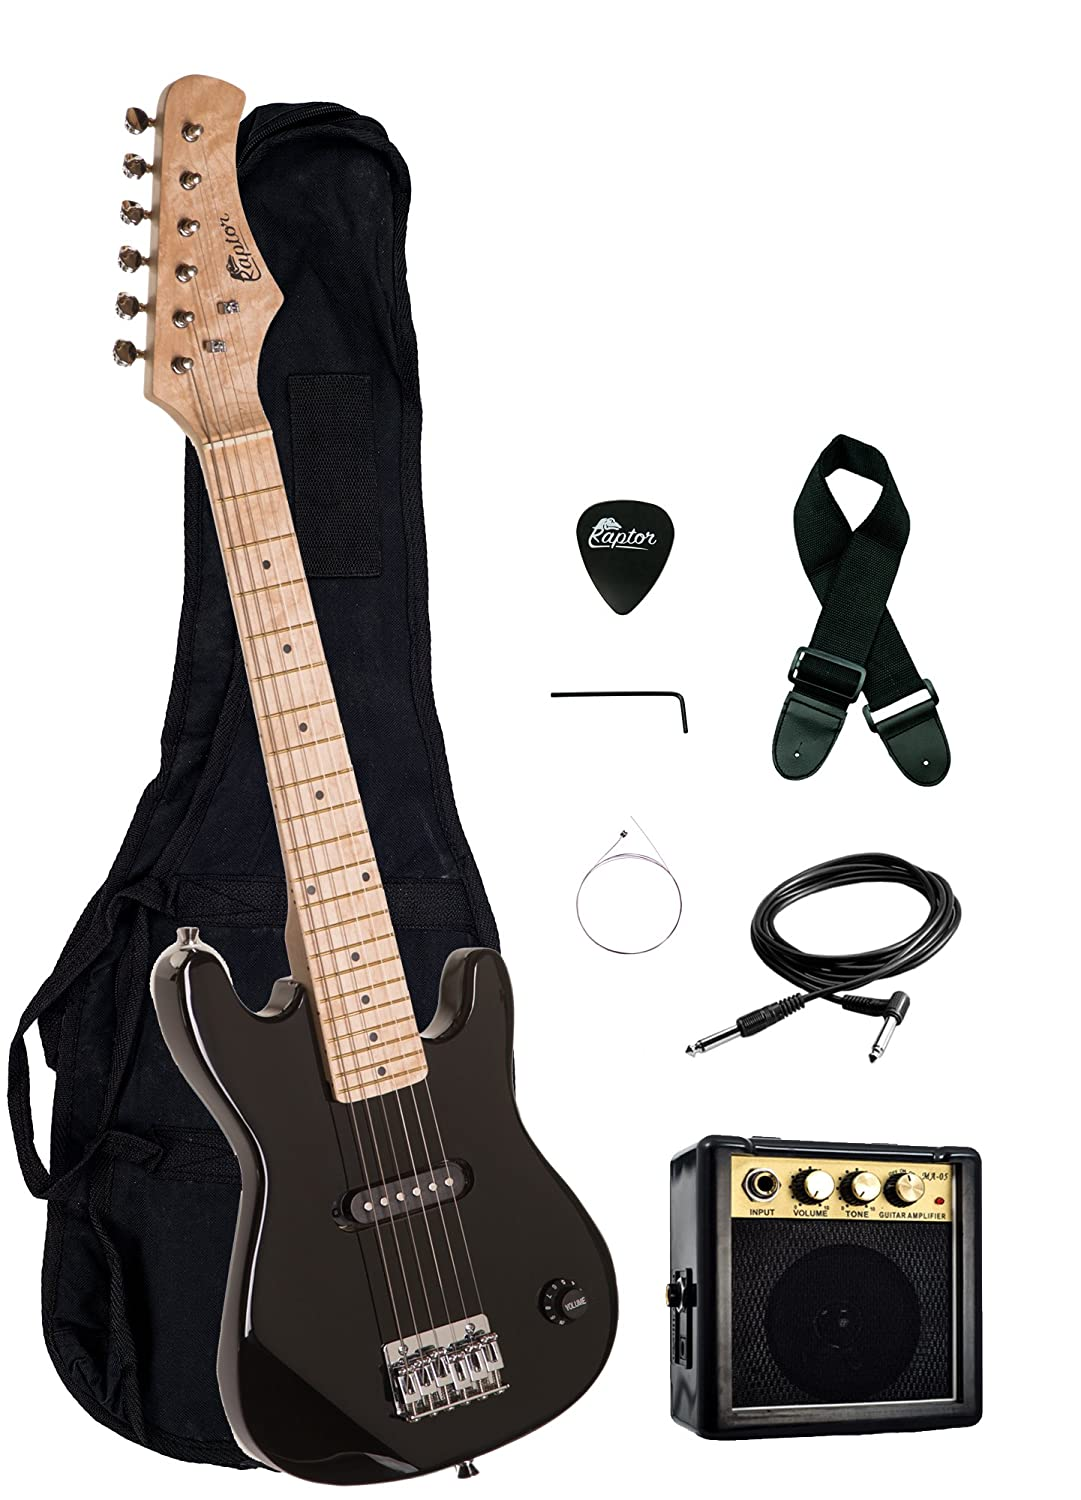 "30"" Kids 1/2 Size ULTIMATE Electric Guitar Package with 3W Amp, Gig Bag, Strap, Cable and Exclusive RAPTOR Picks (Black)"